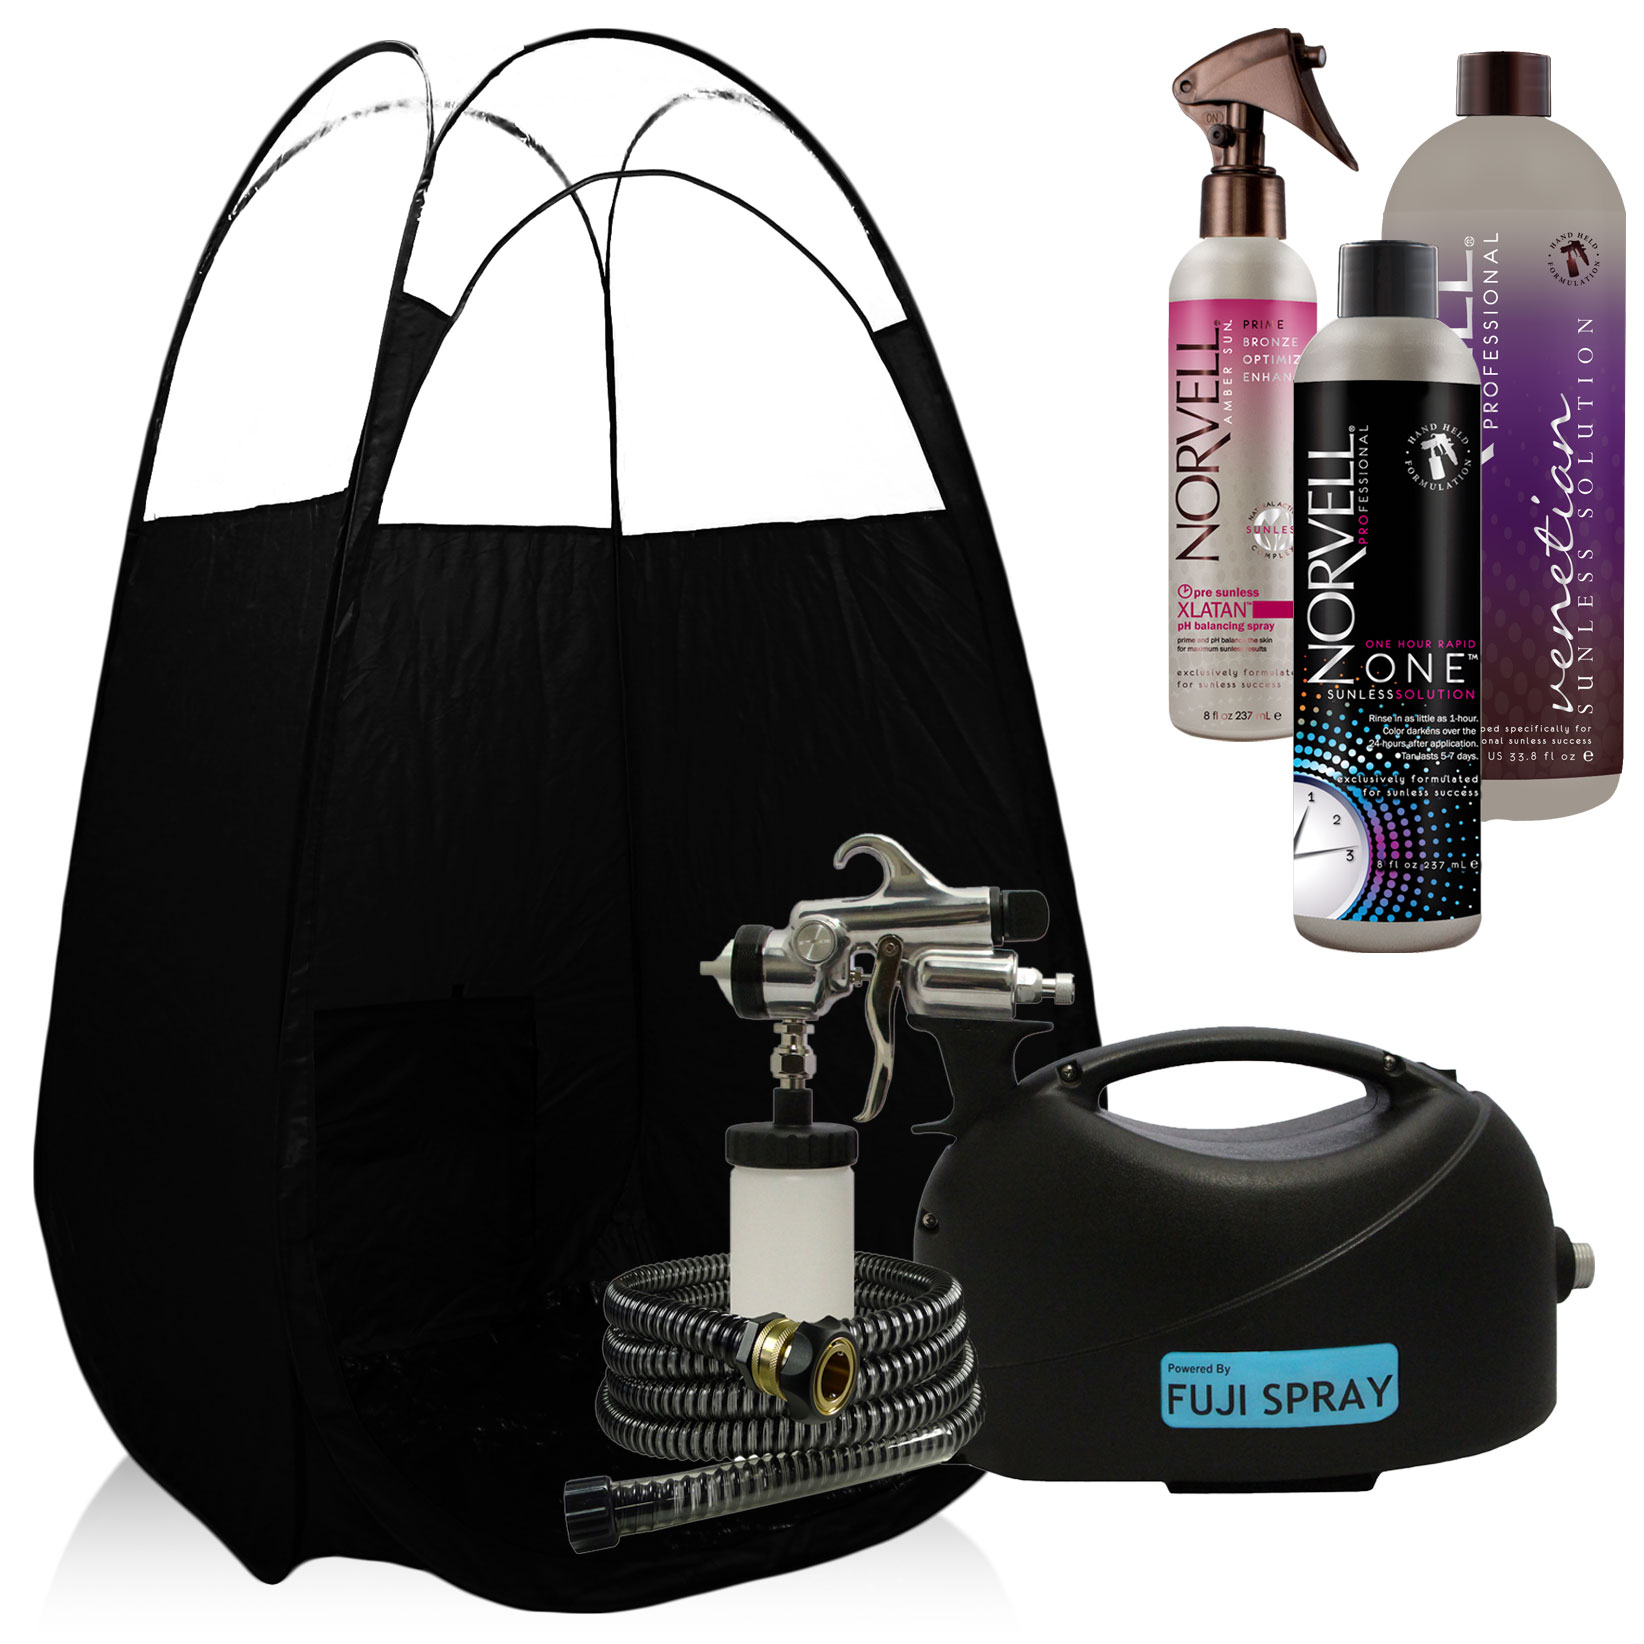 Fuji Hvlp Tan Glo Spray Tan System With Norvell Tanning